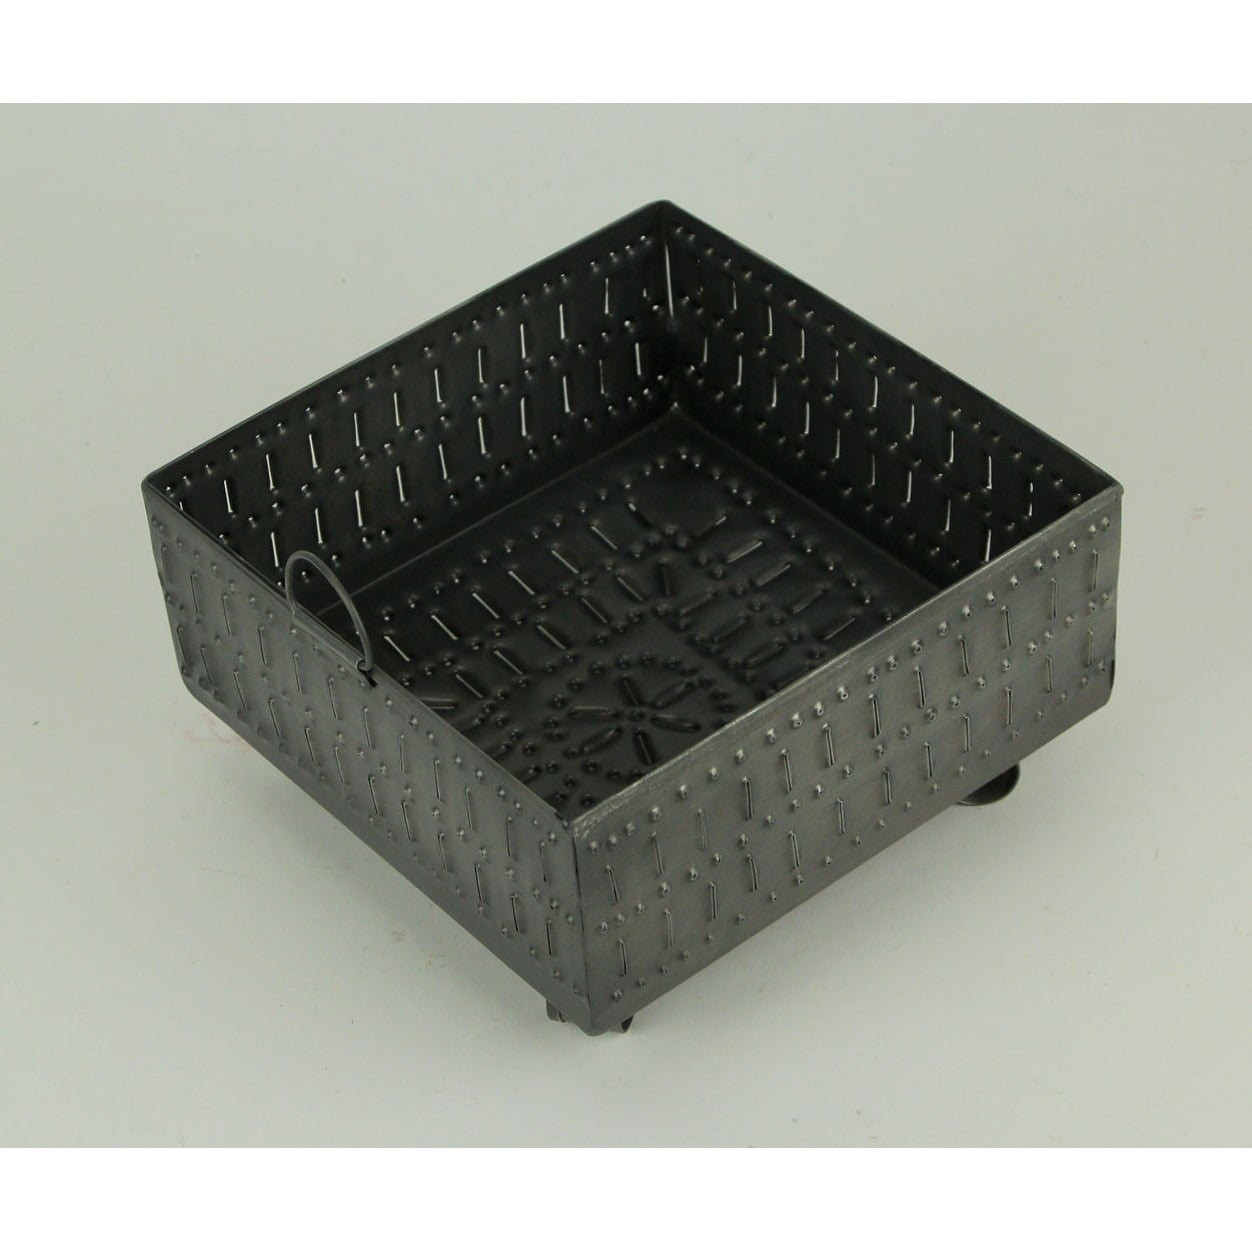 Primitive Punched Tin Napkin Holder Box Dining Table Or Kitchen Decor Overstock 29355383